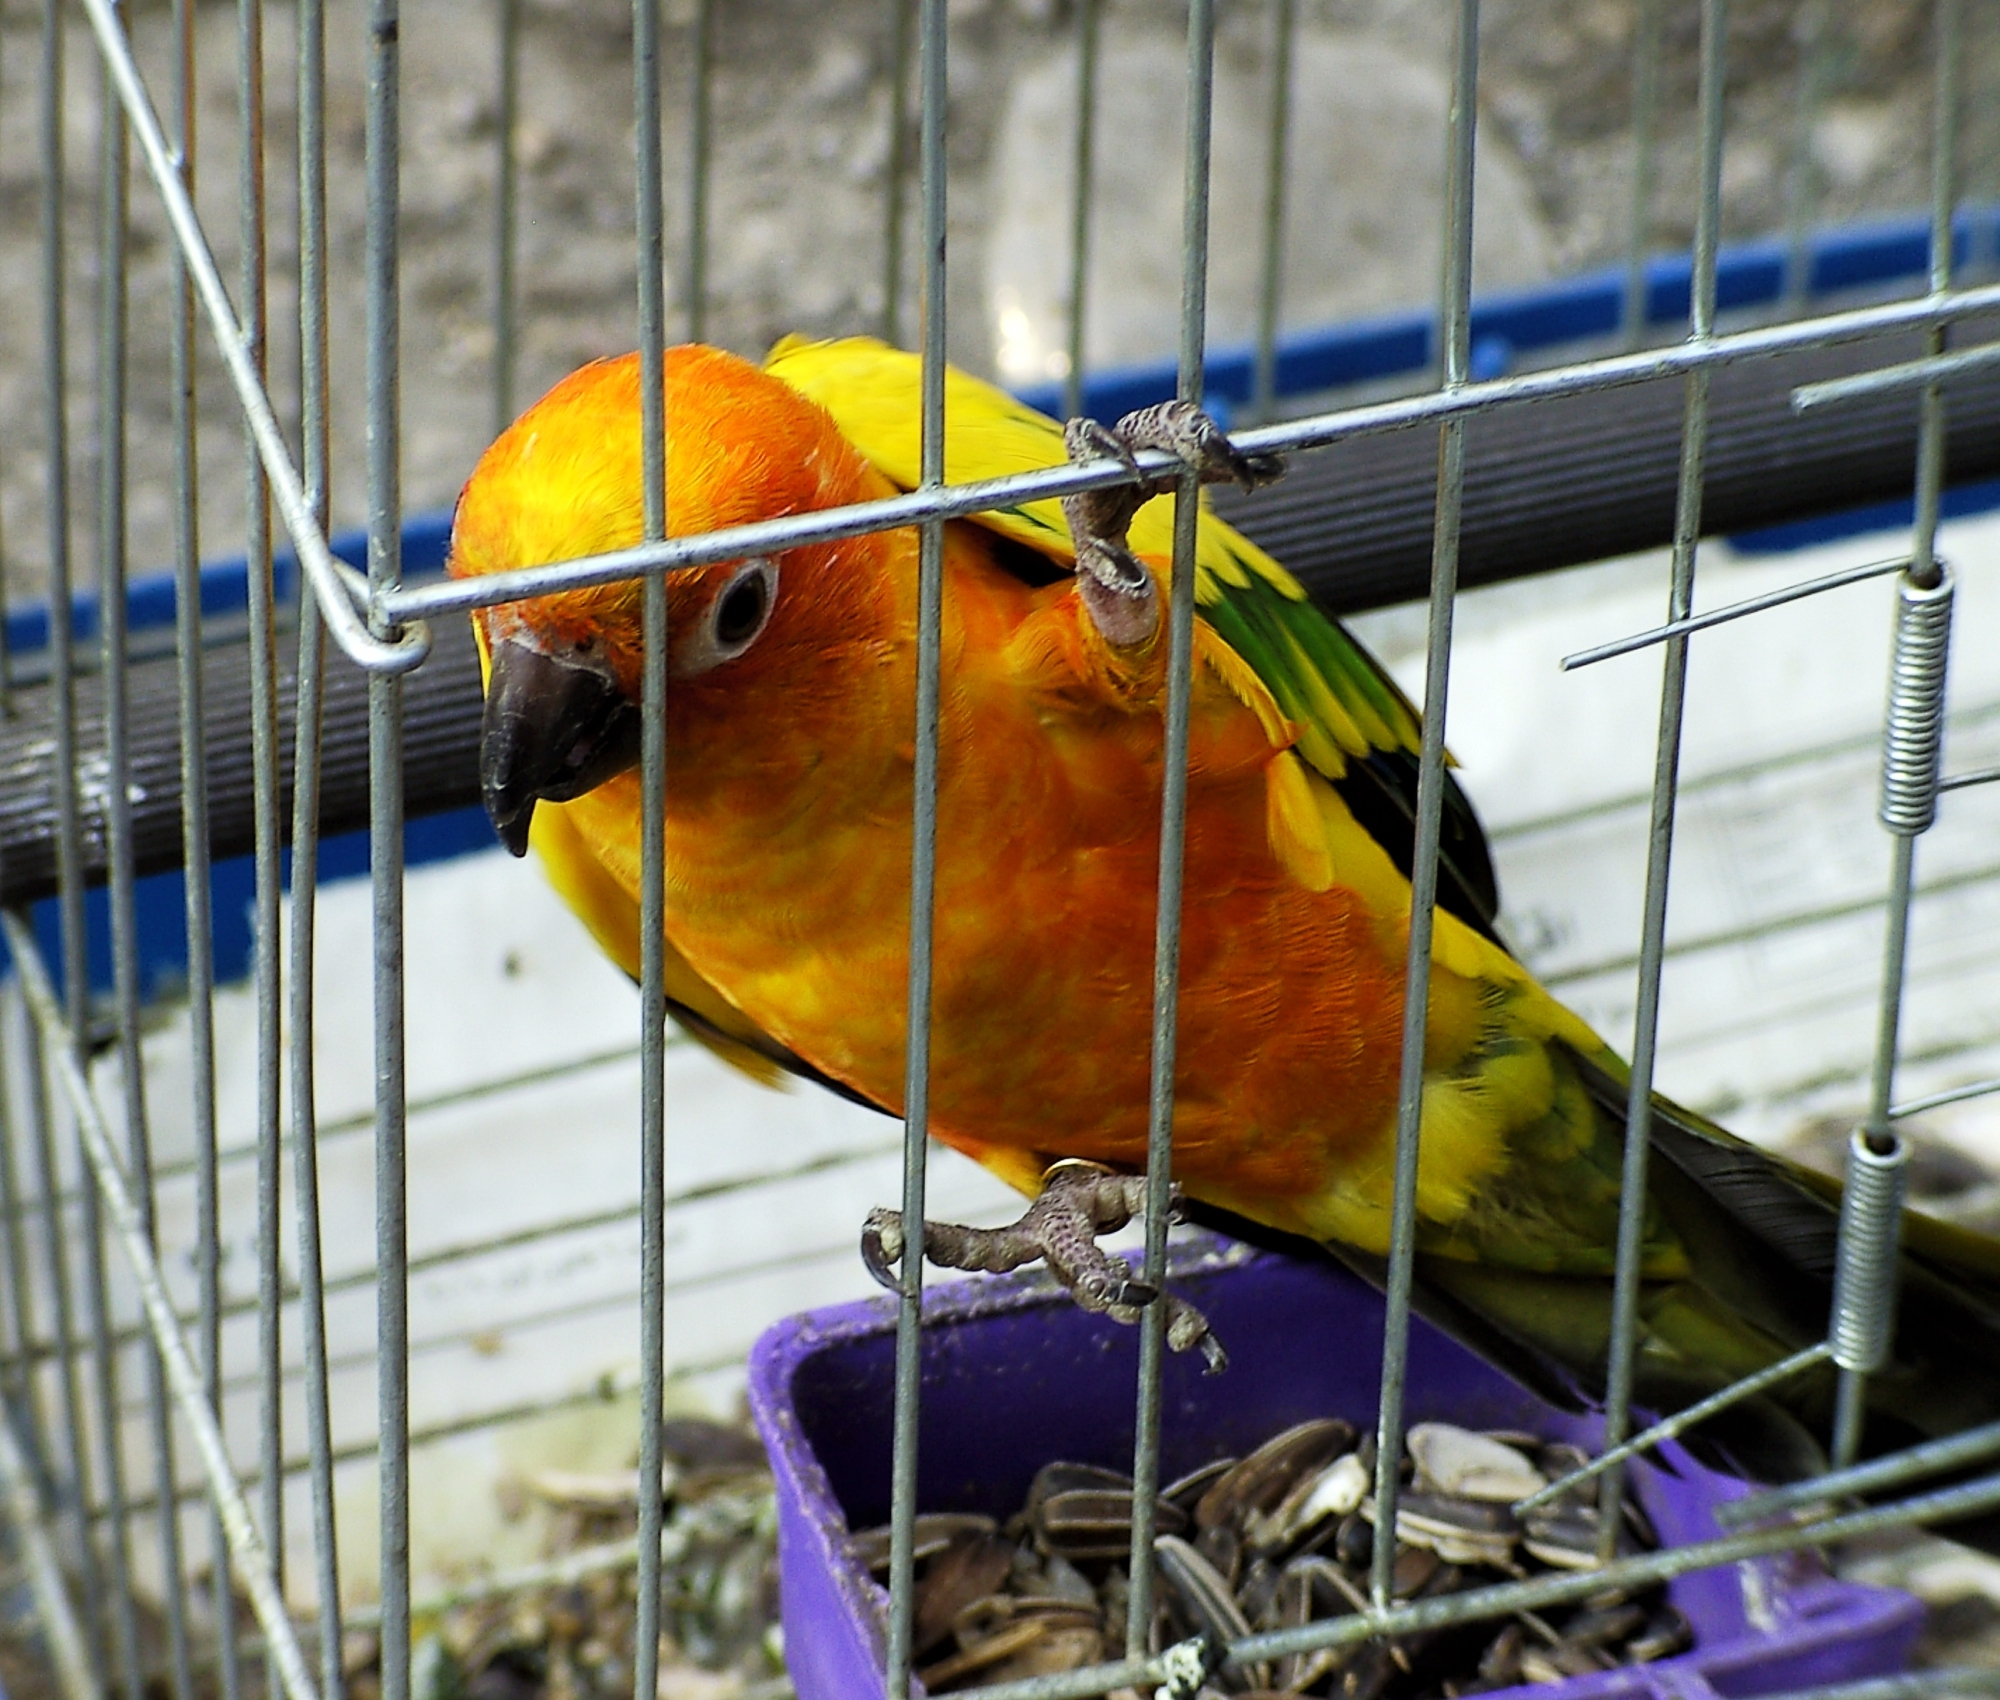 File:Bird in cage.jpg - Wikimedia Commons